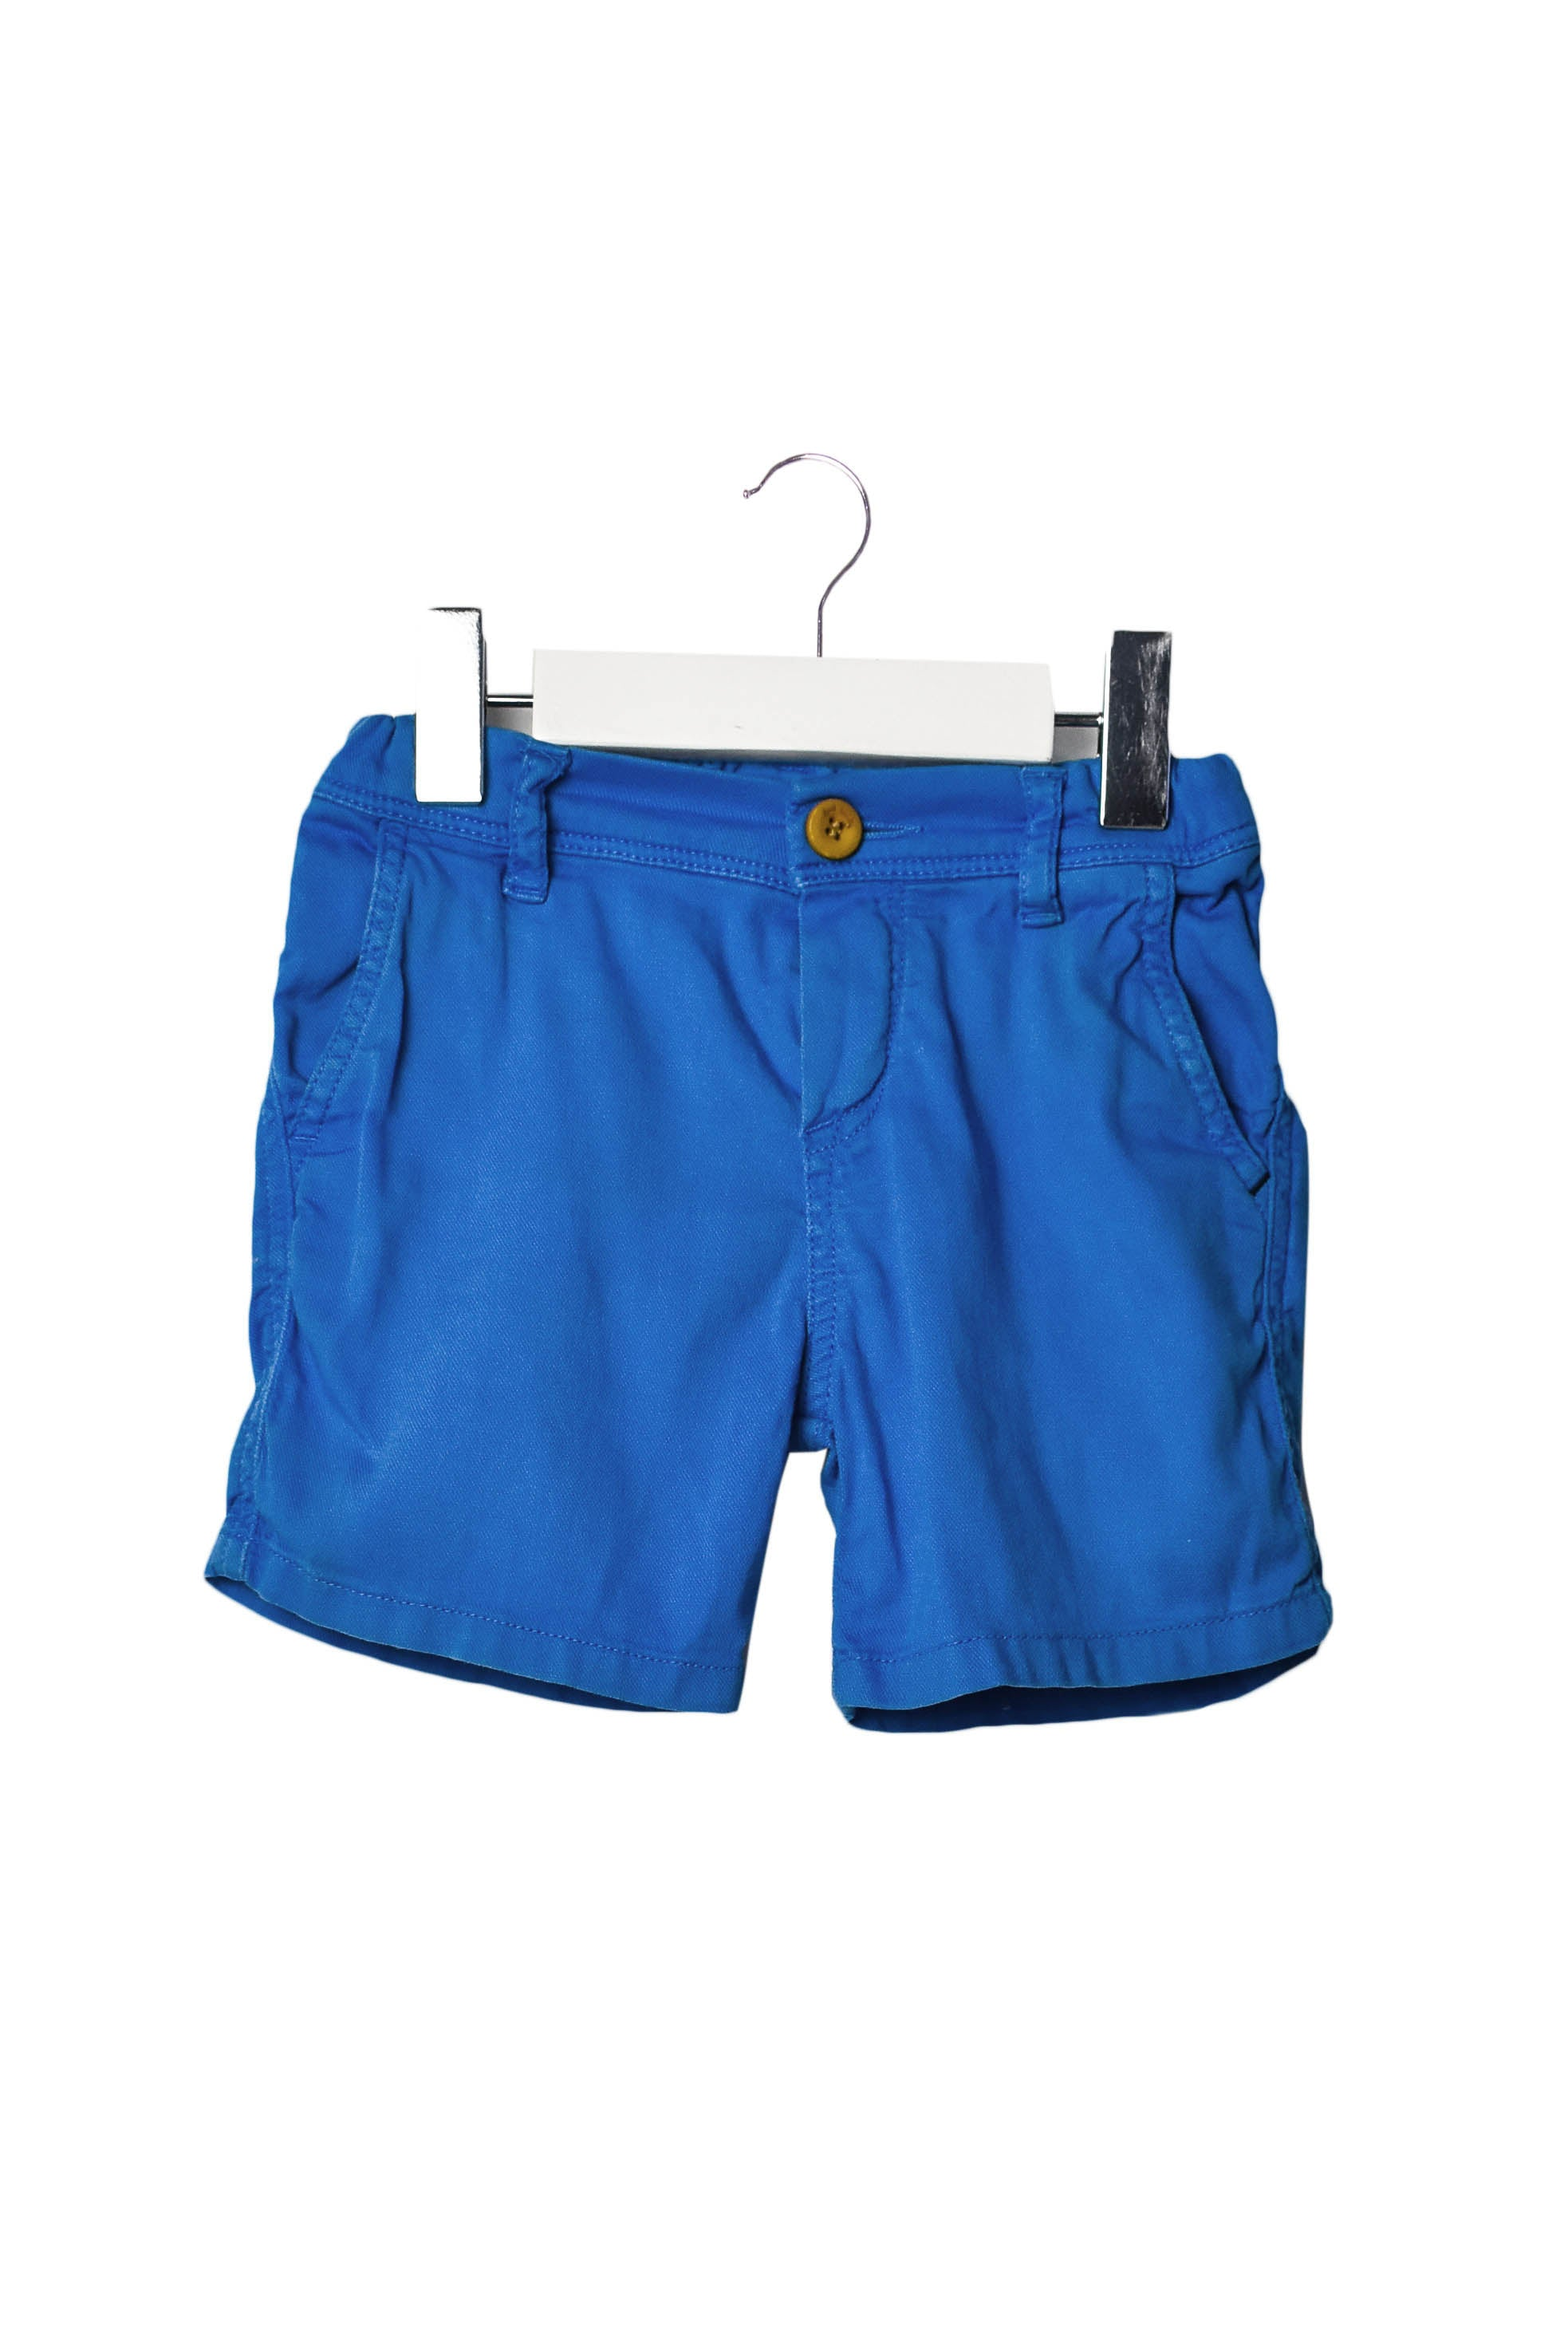 10006825 Paul Smith Baby~Shorts 18M at Retykle